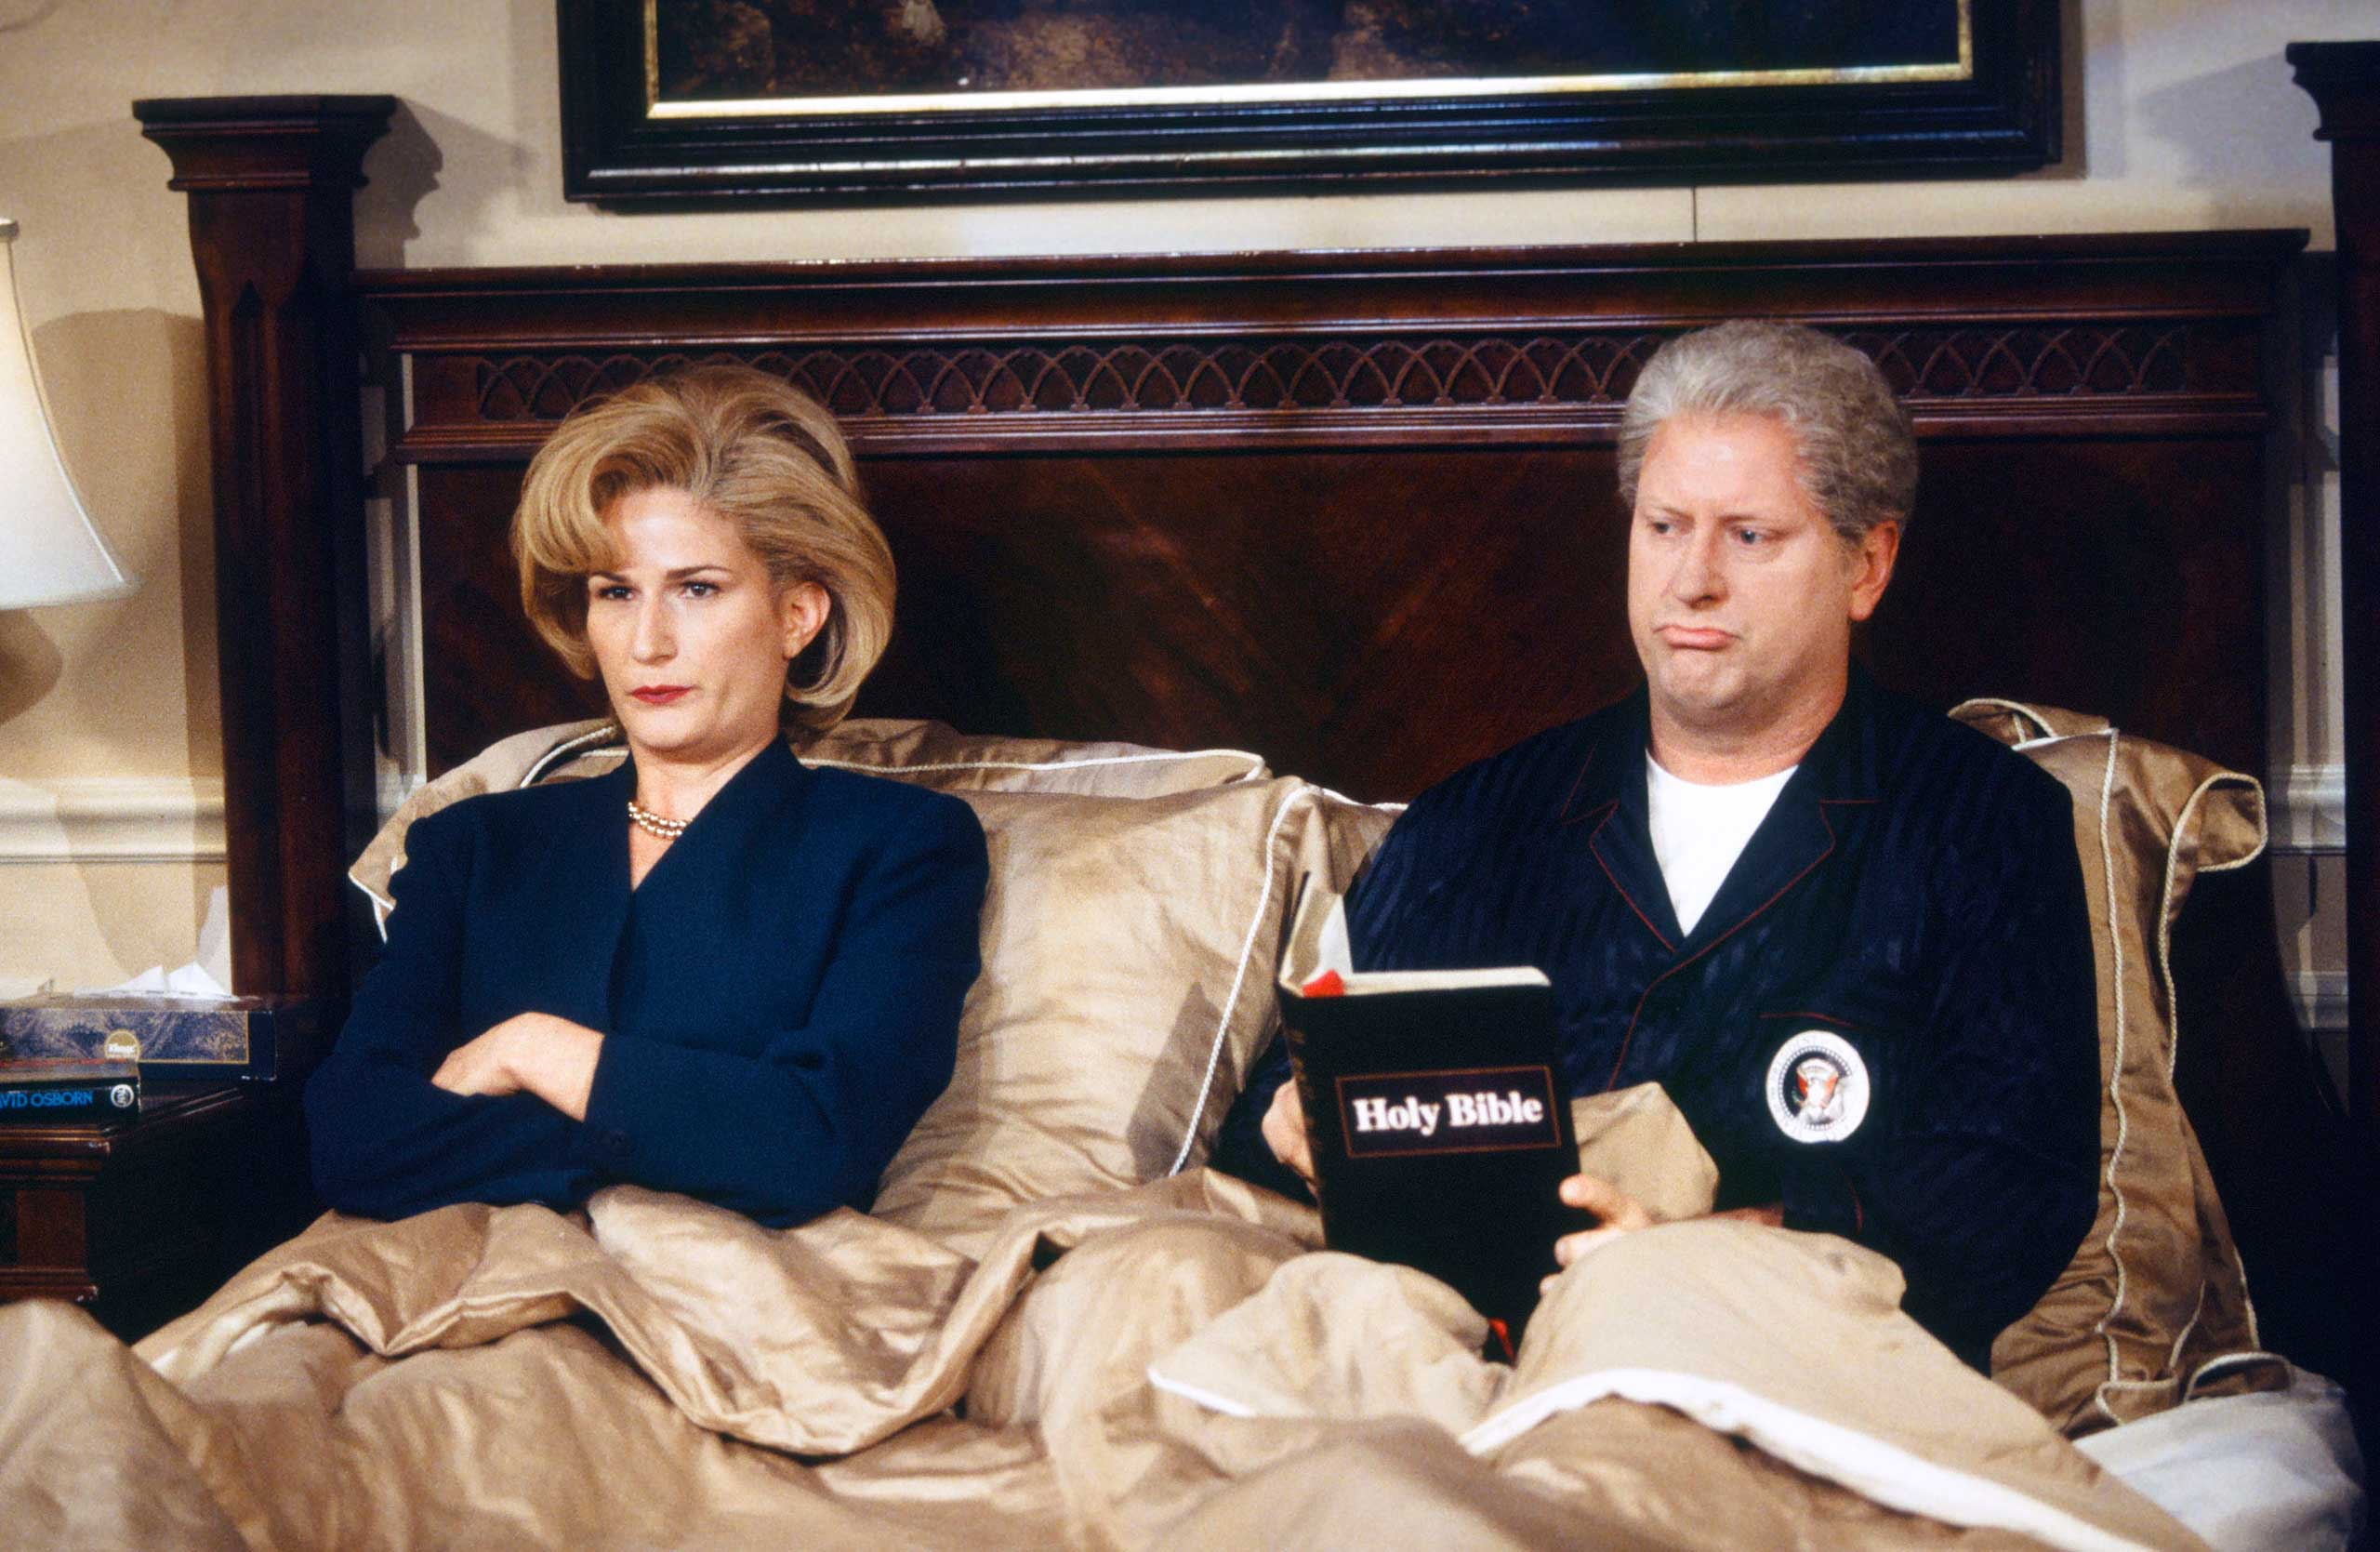 Ana Gasteyer as Hillary Clinton and Darrell Hammond as President Bill Clinton during the 'Bedtime at the White House' skit on Oct. 3, 1998.